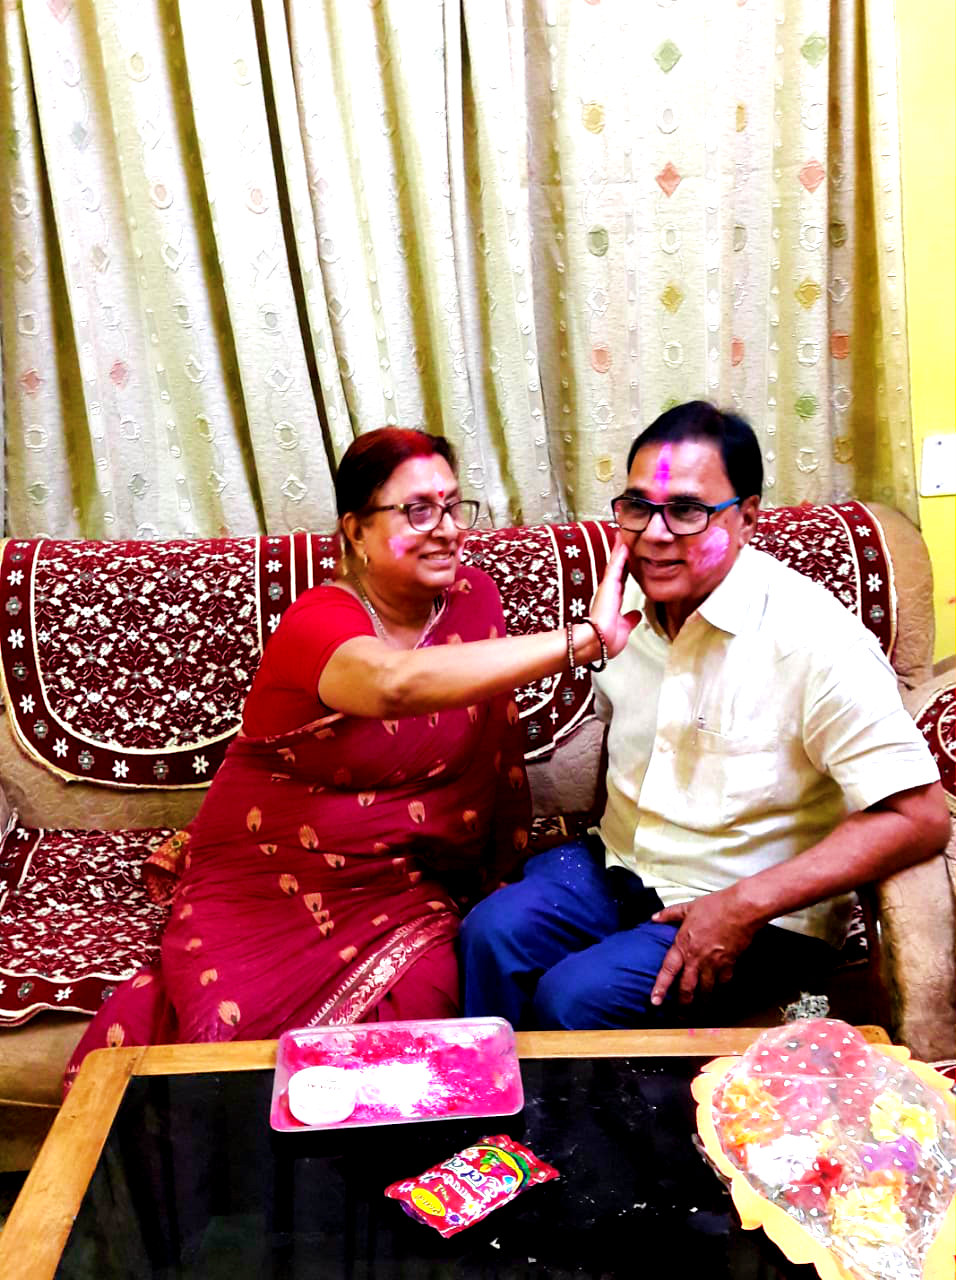 Mrs. & Mr. Madhepuri celebrating Holi at their residence Vrindavan whispering a melodious song-